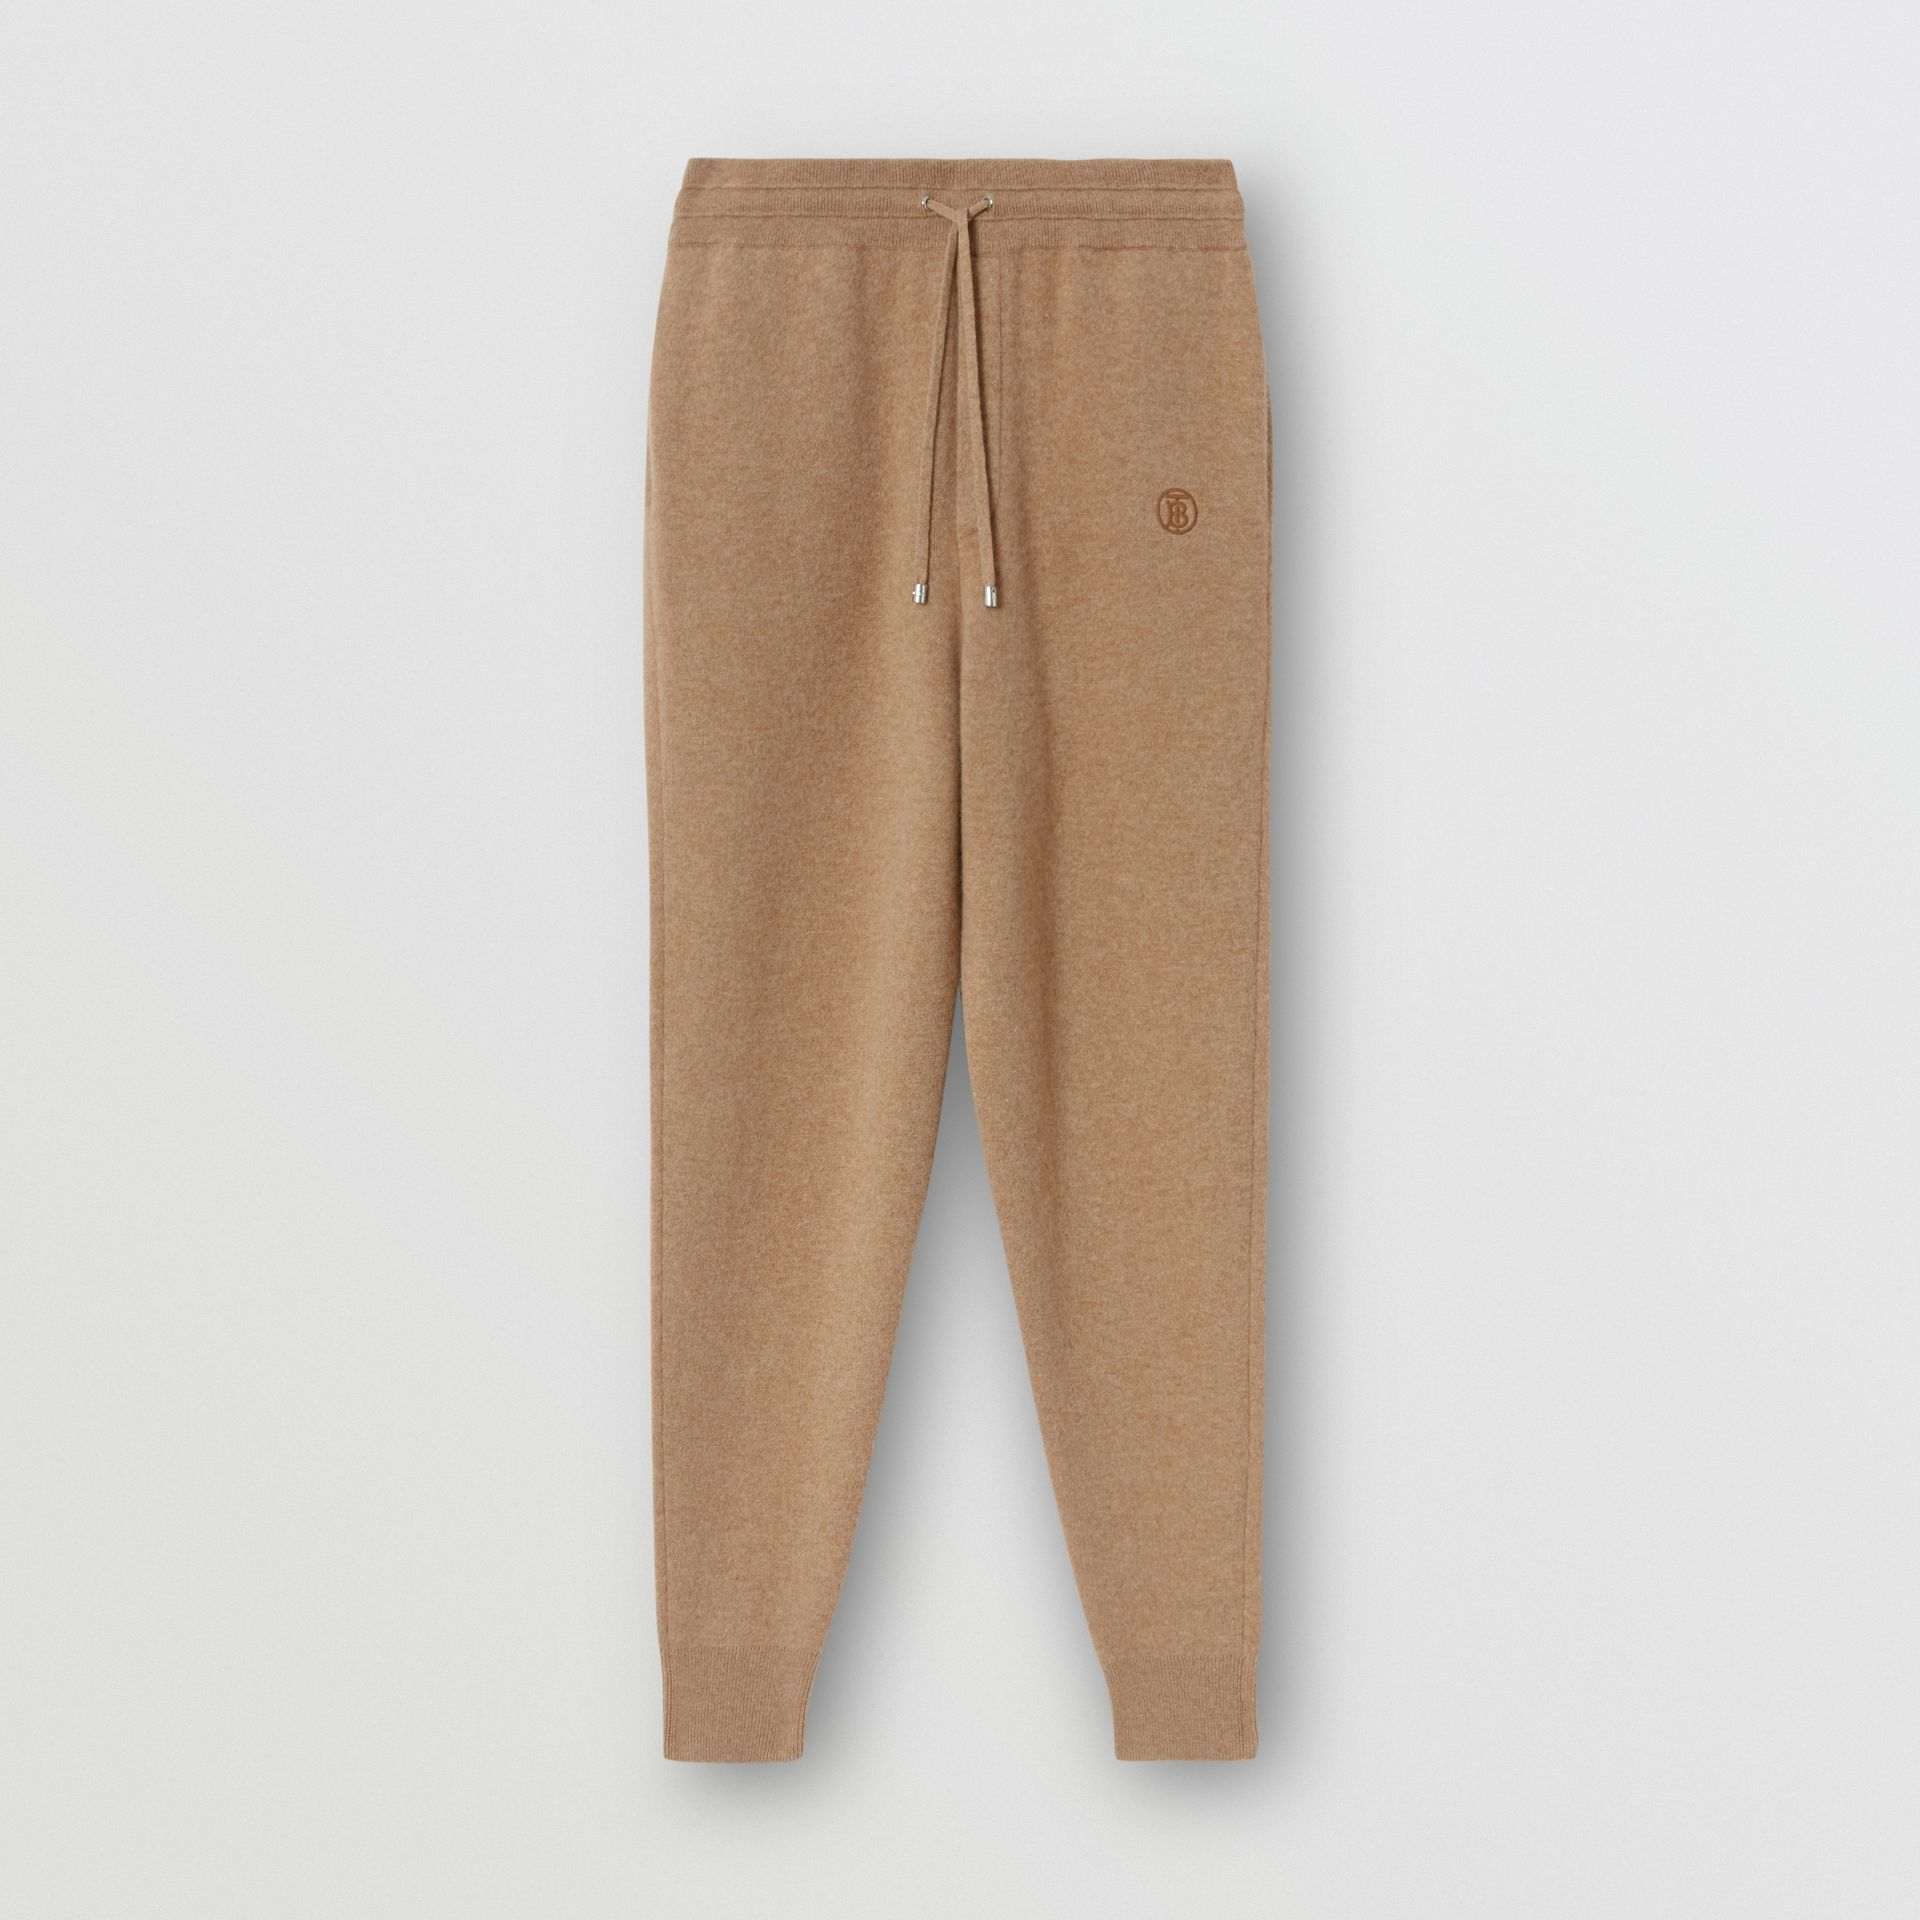 Monogram Motif Cashmere Blend Trackpants in Pale Coffee - Men | Burberry United Kingdom - gallery image 1